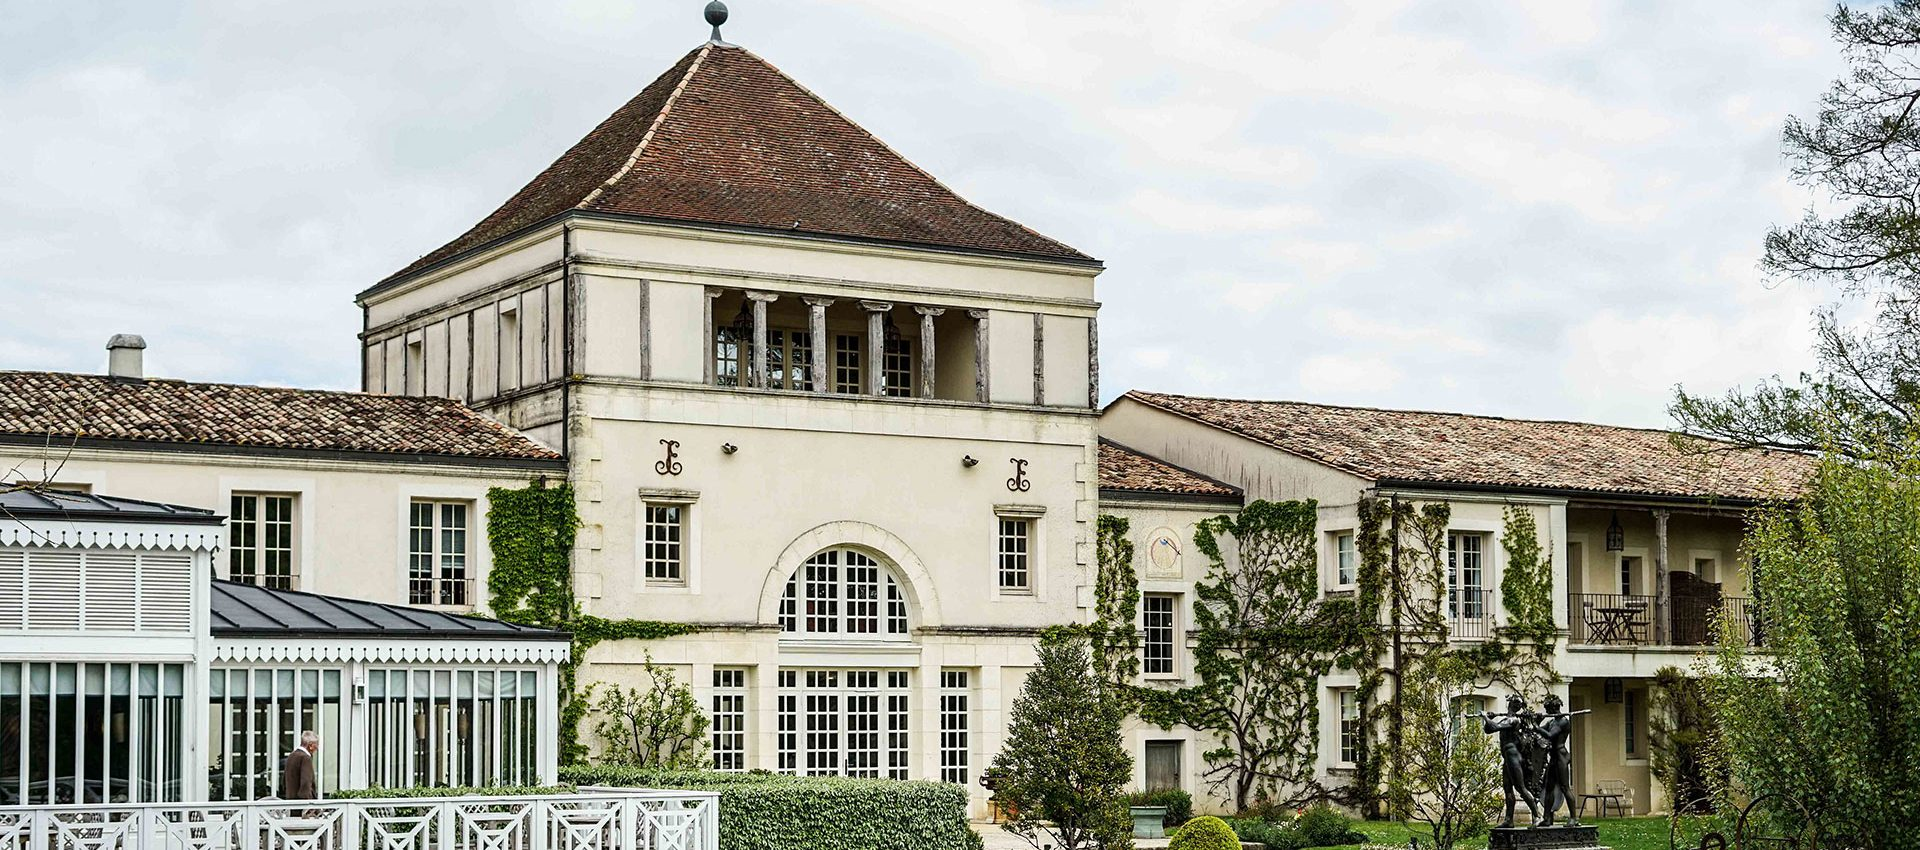 One of the world's best wine regions and a Chateau transformed into a hotel near Bordeaux.